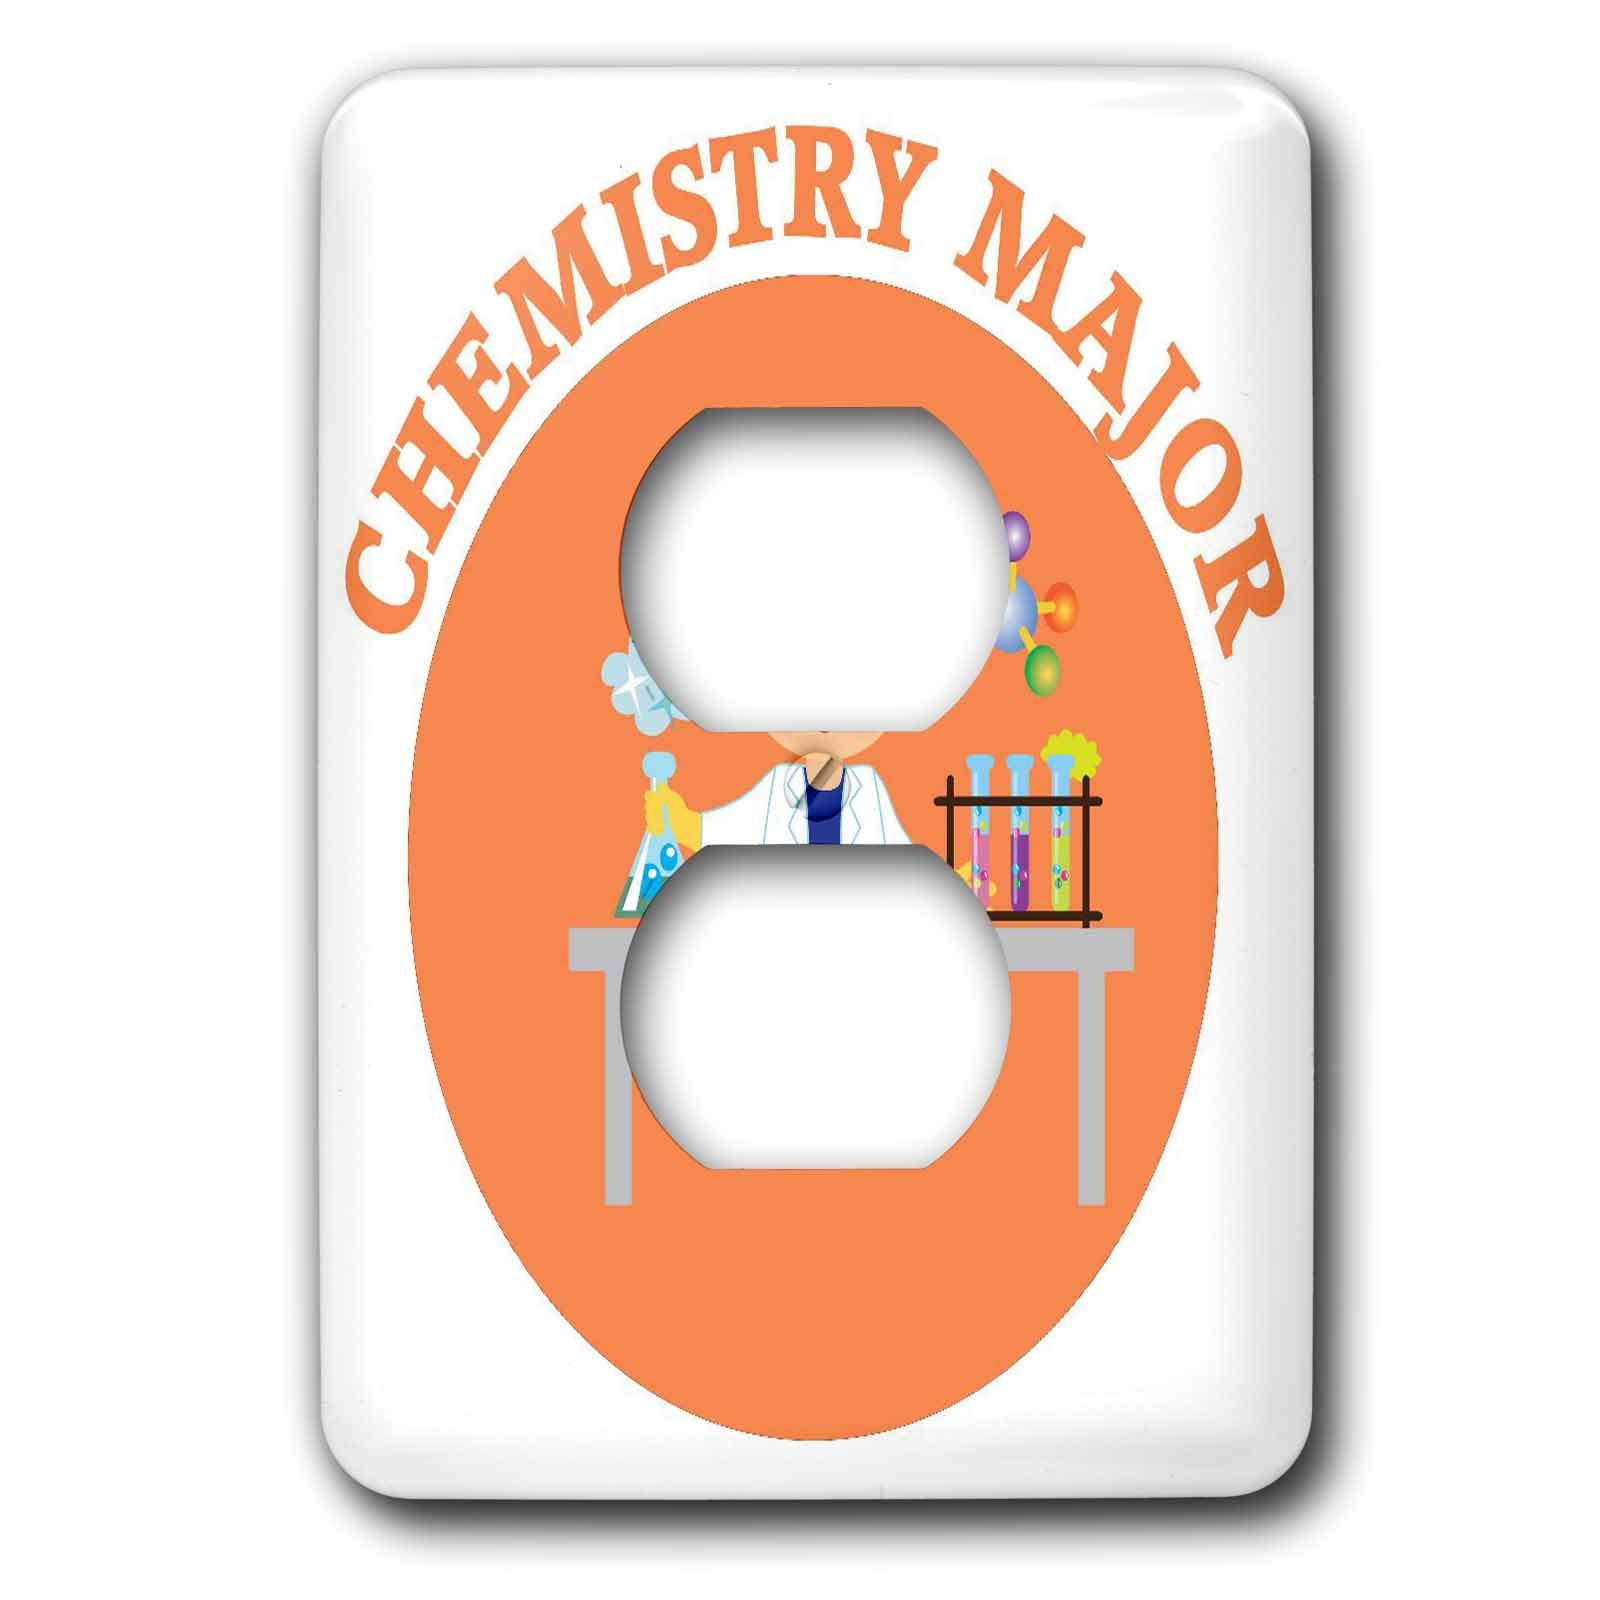 3dRose TNMGraphics School - Chemistry Major in Orange - Light Switch Covers - 2 plug outlet cover (lsp_286284_6)